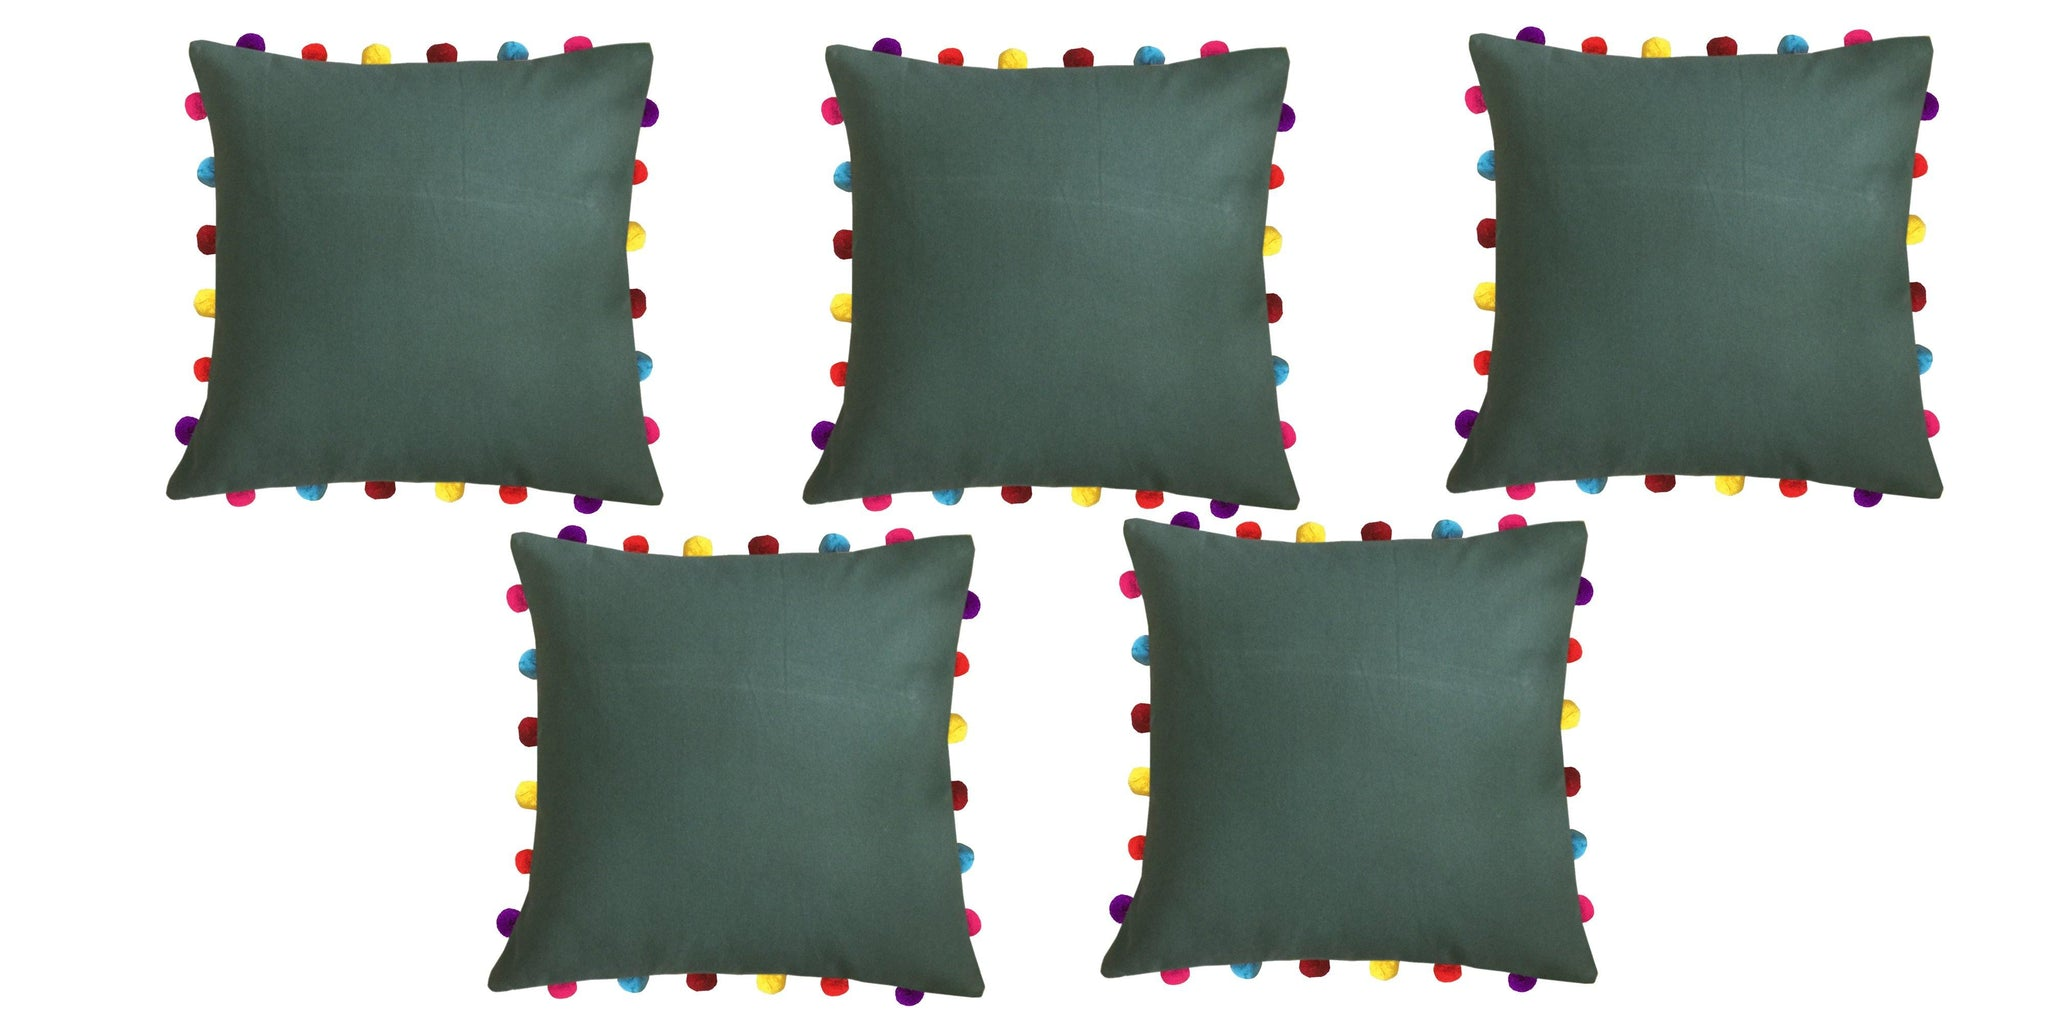 "Lushomes Vineyard Green Cushion Cover with Colorful Pom pom (5 pcs, 18 x 18"") - Lushomes"